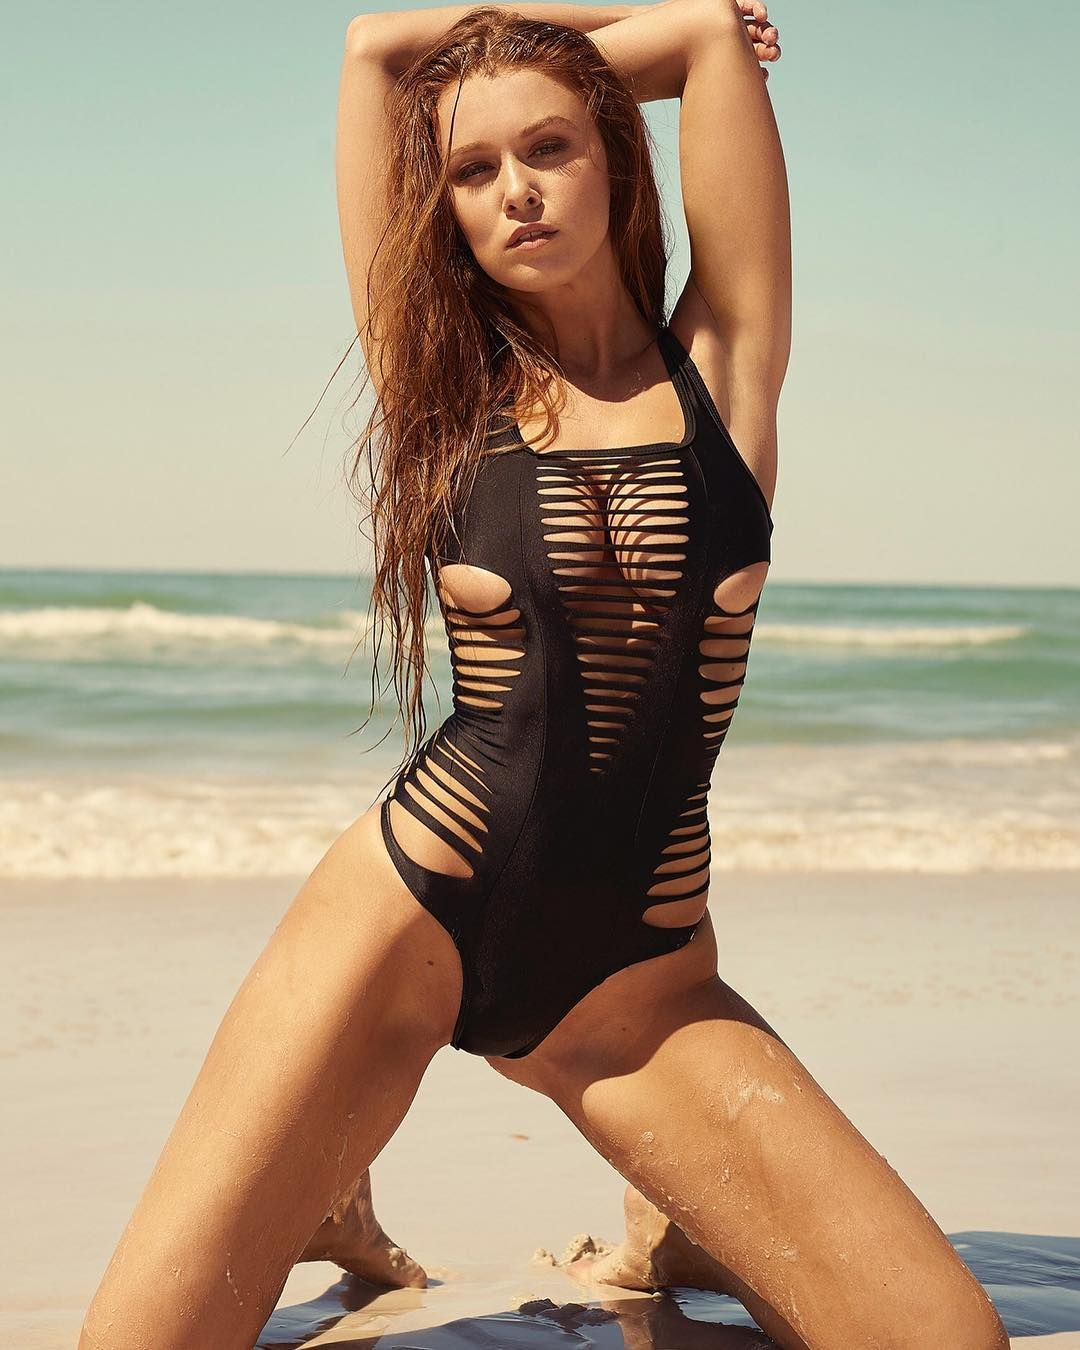 Playboy Cyber Girl Leanna Decker Pictures Videos Gifs Eye Candies On Social